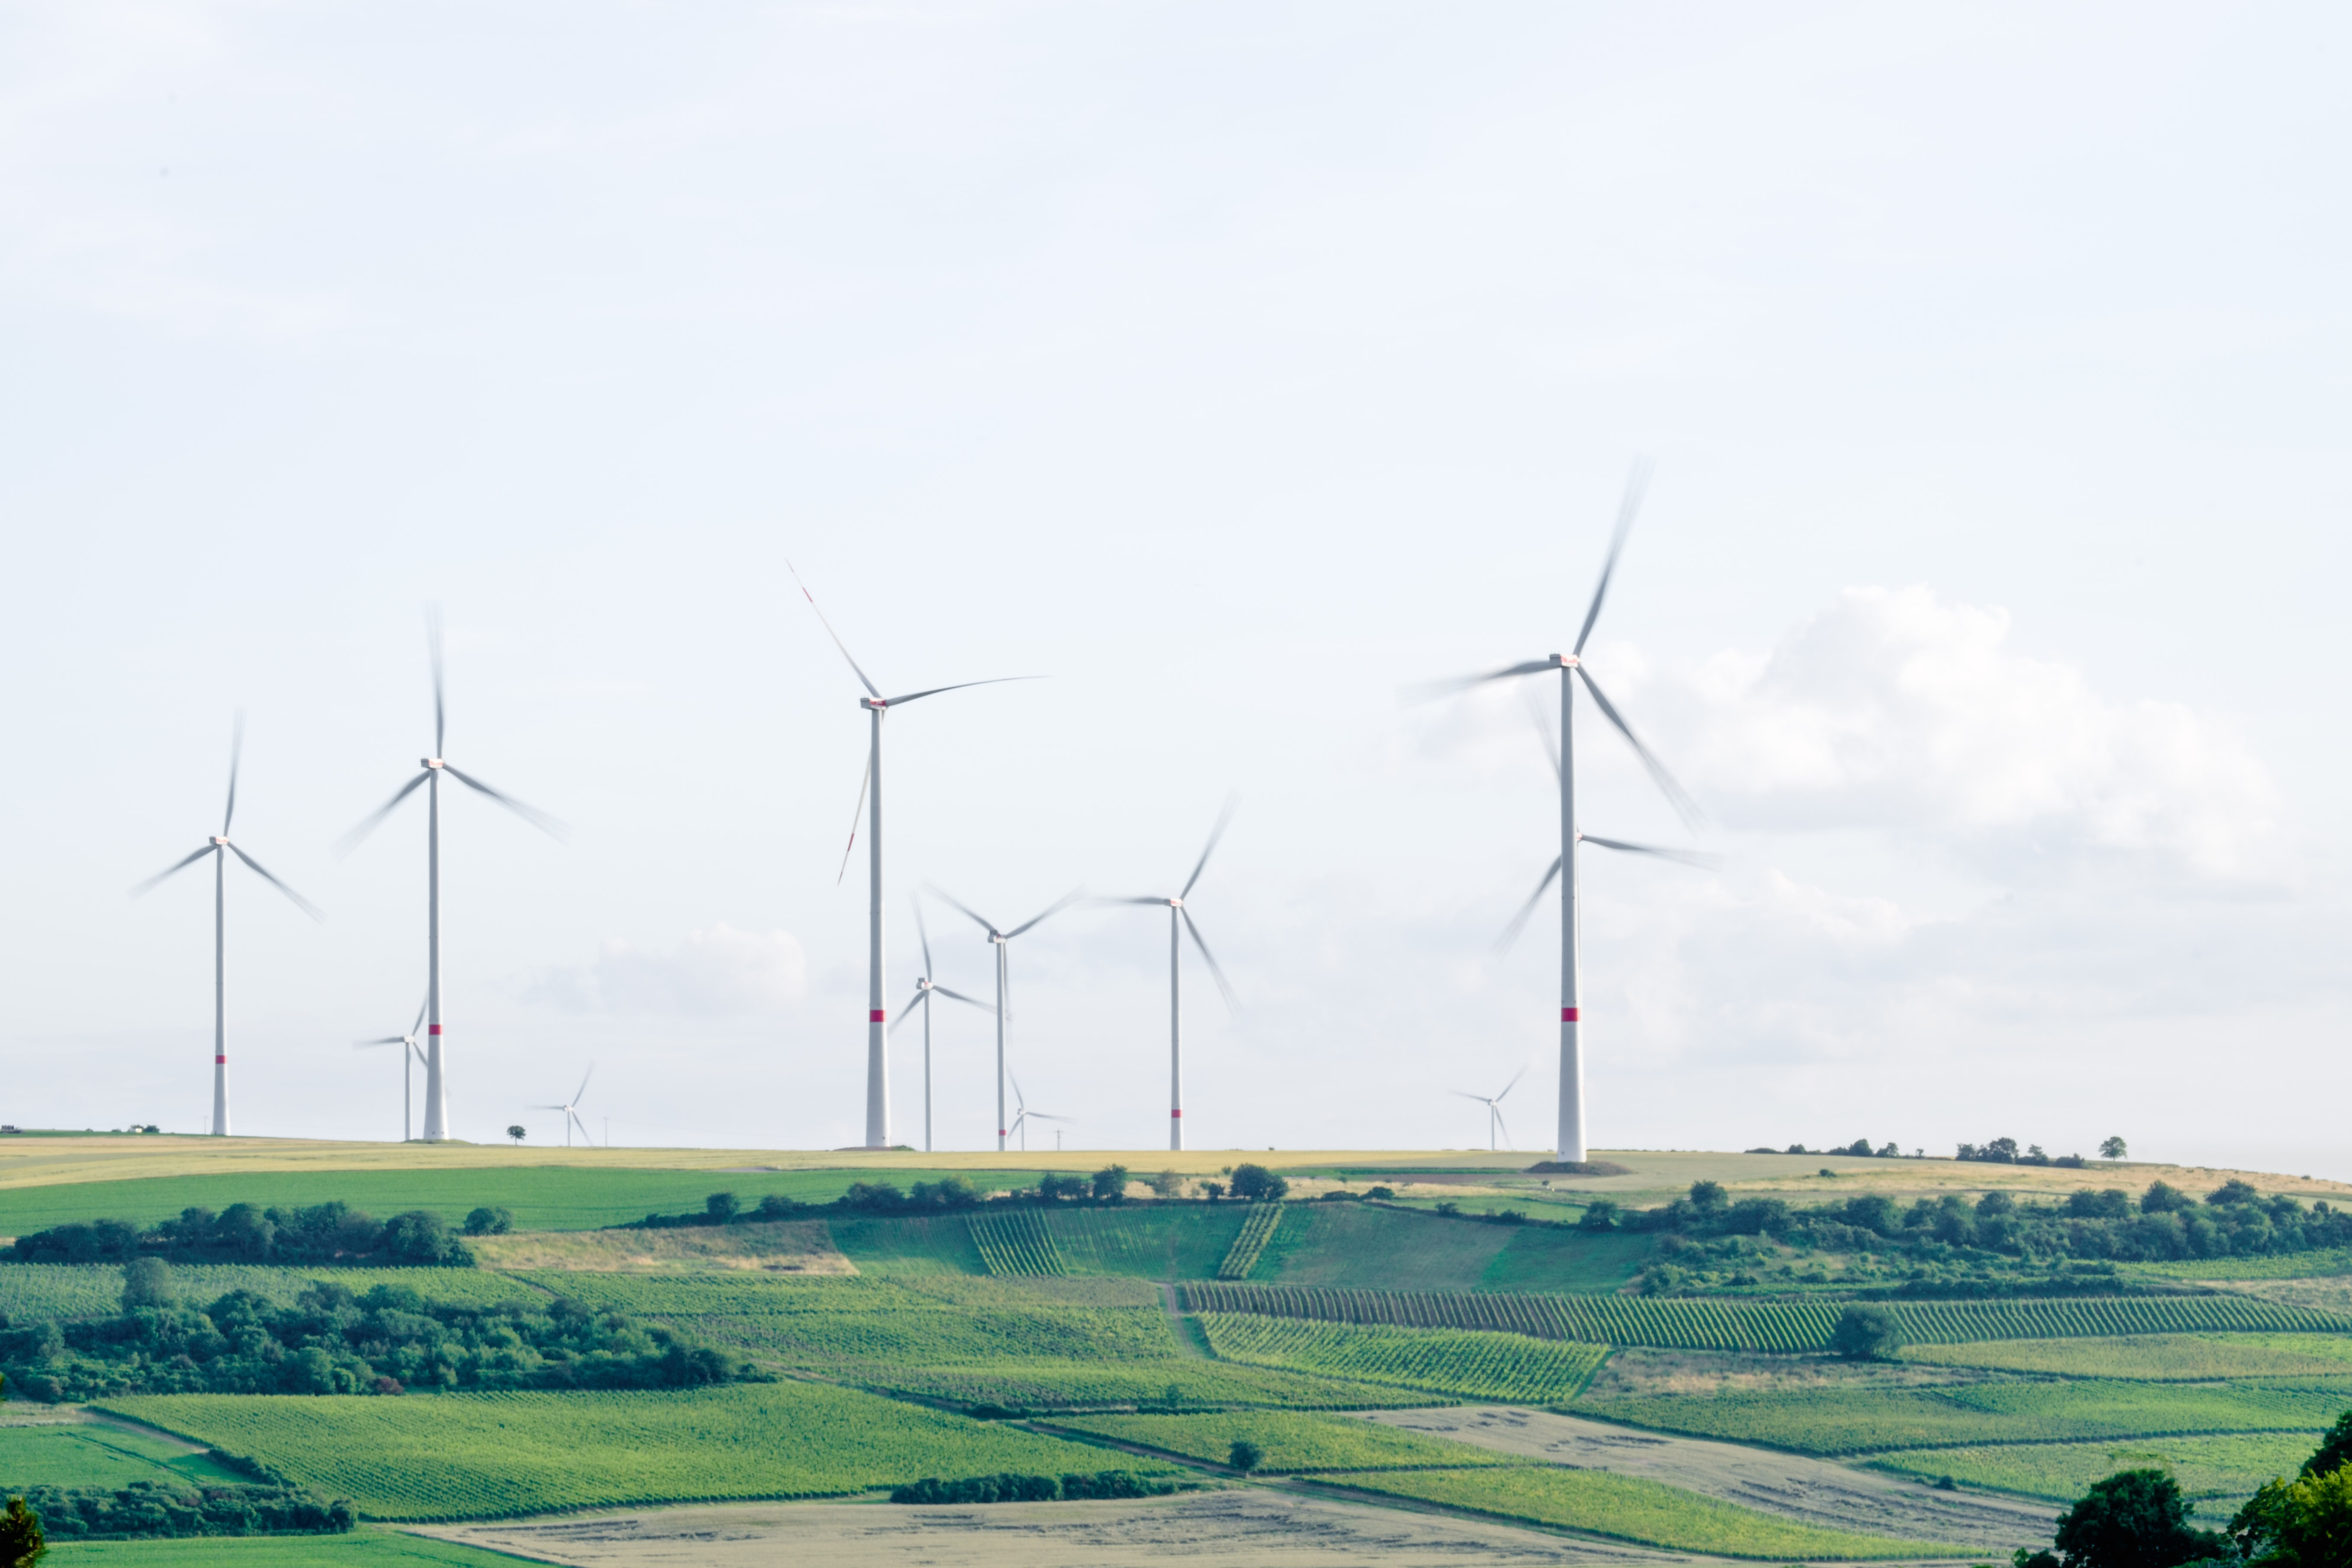 A group of wind turbines in a hilly landscape